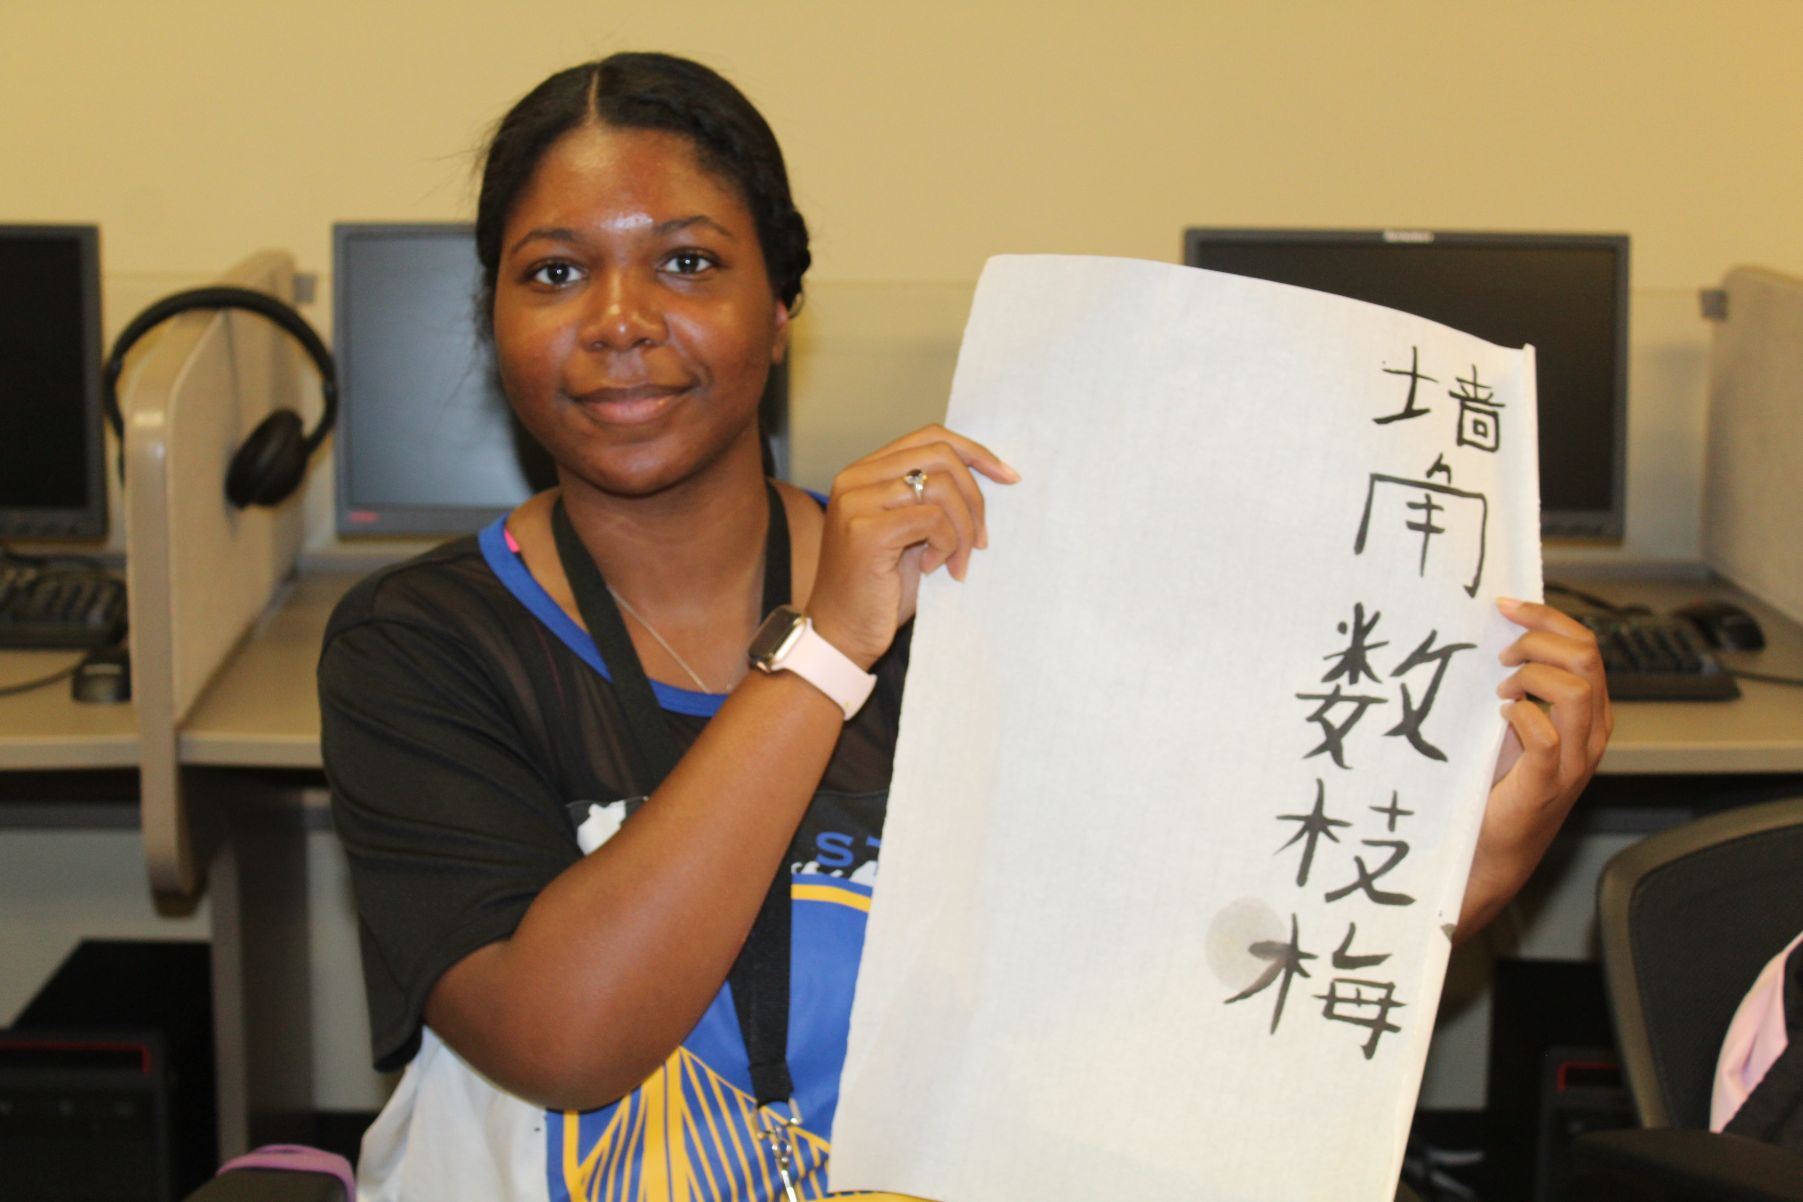 A proud student shows off her calligraphy.